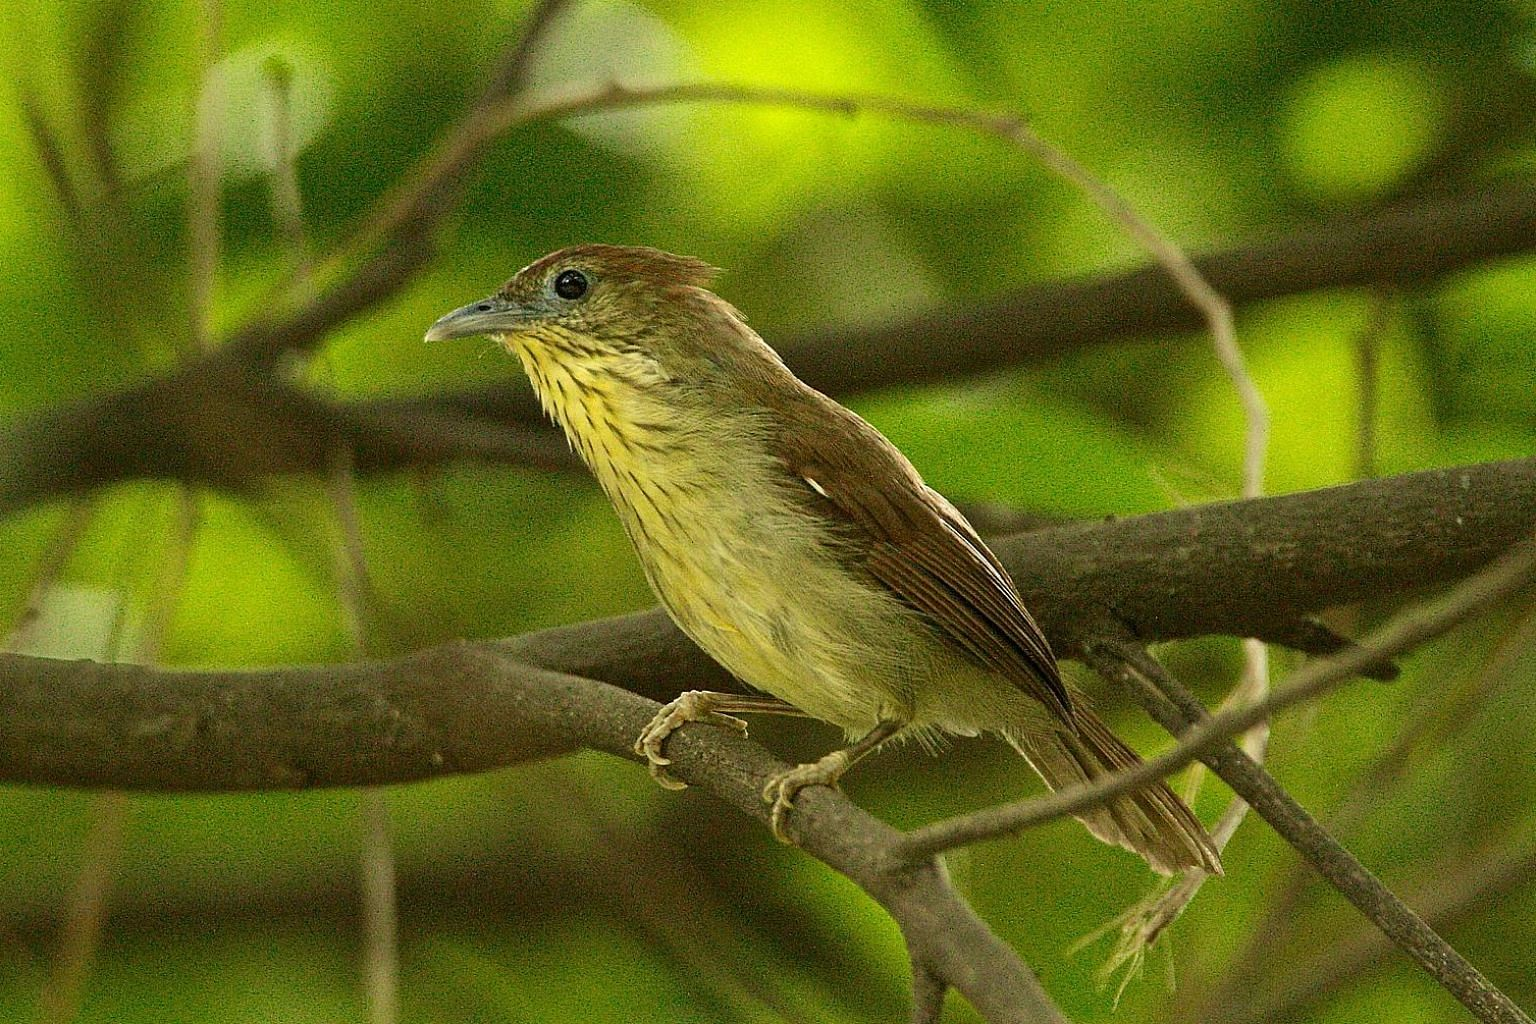 A pin-striped tit babbler at Kent Ridge Park. By analysing genetic material in samples taken from 46 babblers here, scientists traced the trail of genetic decline to about 50 years ago, when large parts of Singapore were urbanised.